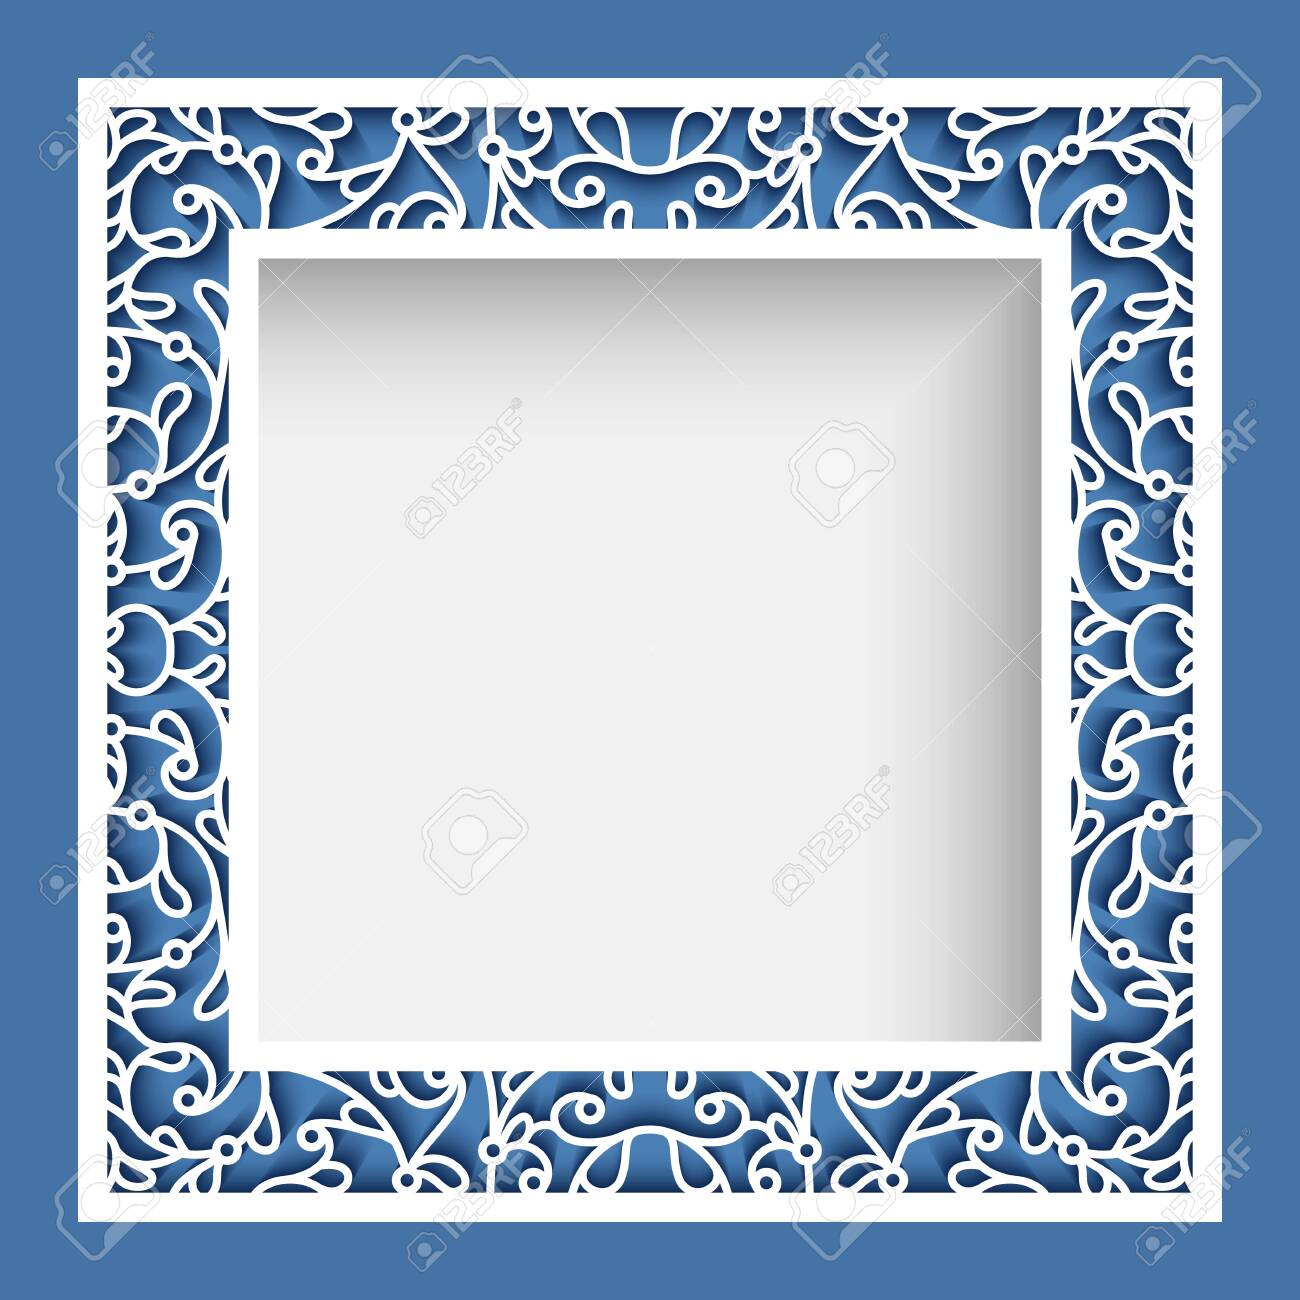 Square photo frame, elegant border ornament with cutout paper swirls, vector template for laser cutting, vintage lace decoration for greeting card or wedding invitation design - 134818682